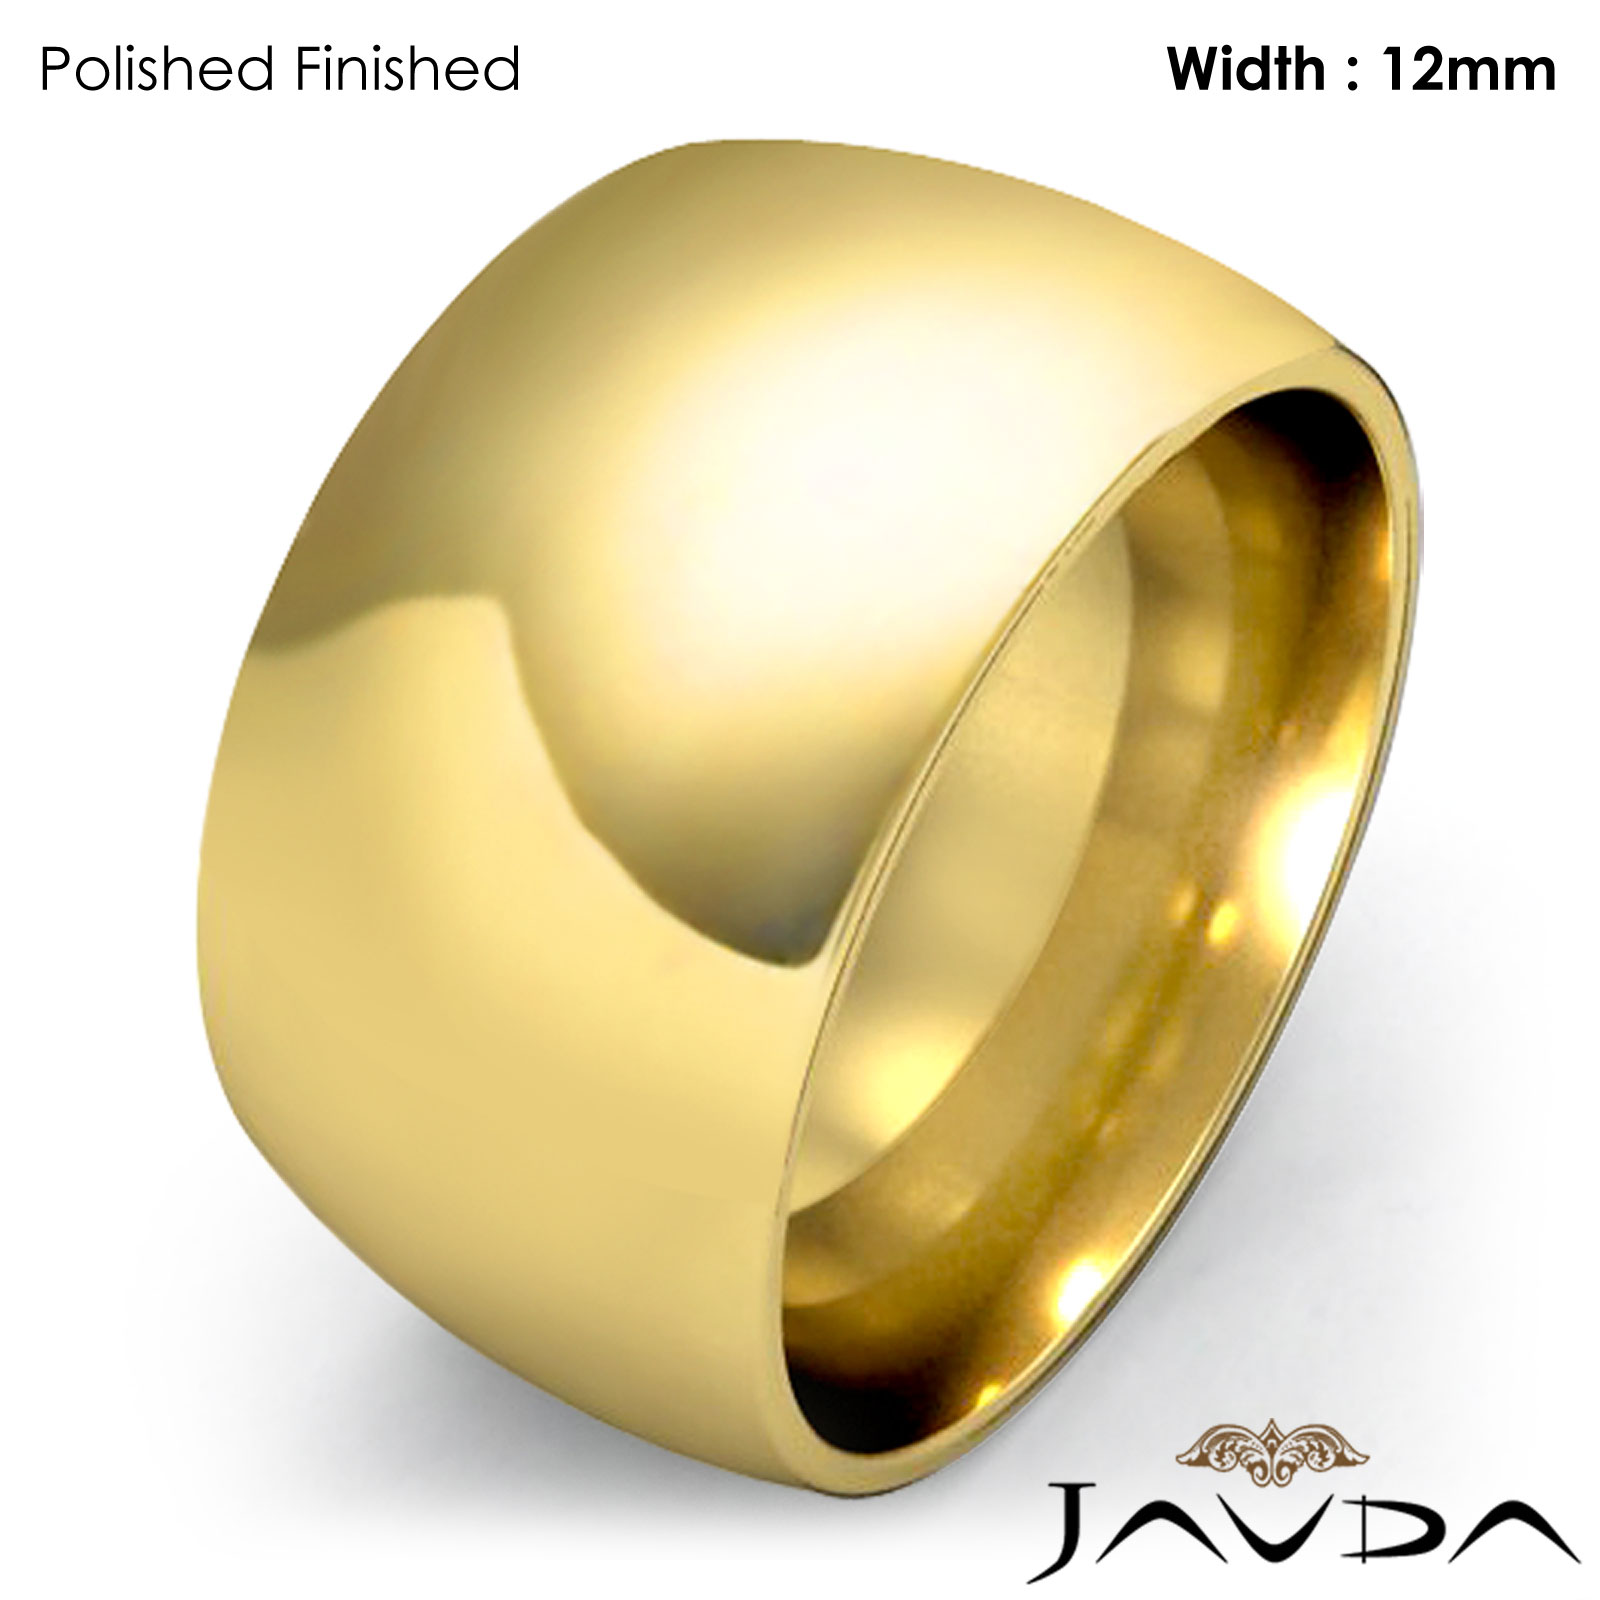 Wider Women 18k Gold Plain Dome Wedding Band Ring 12mm Solid 17 2